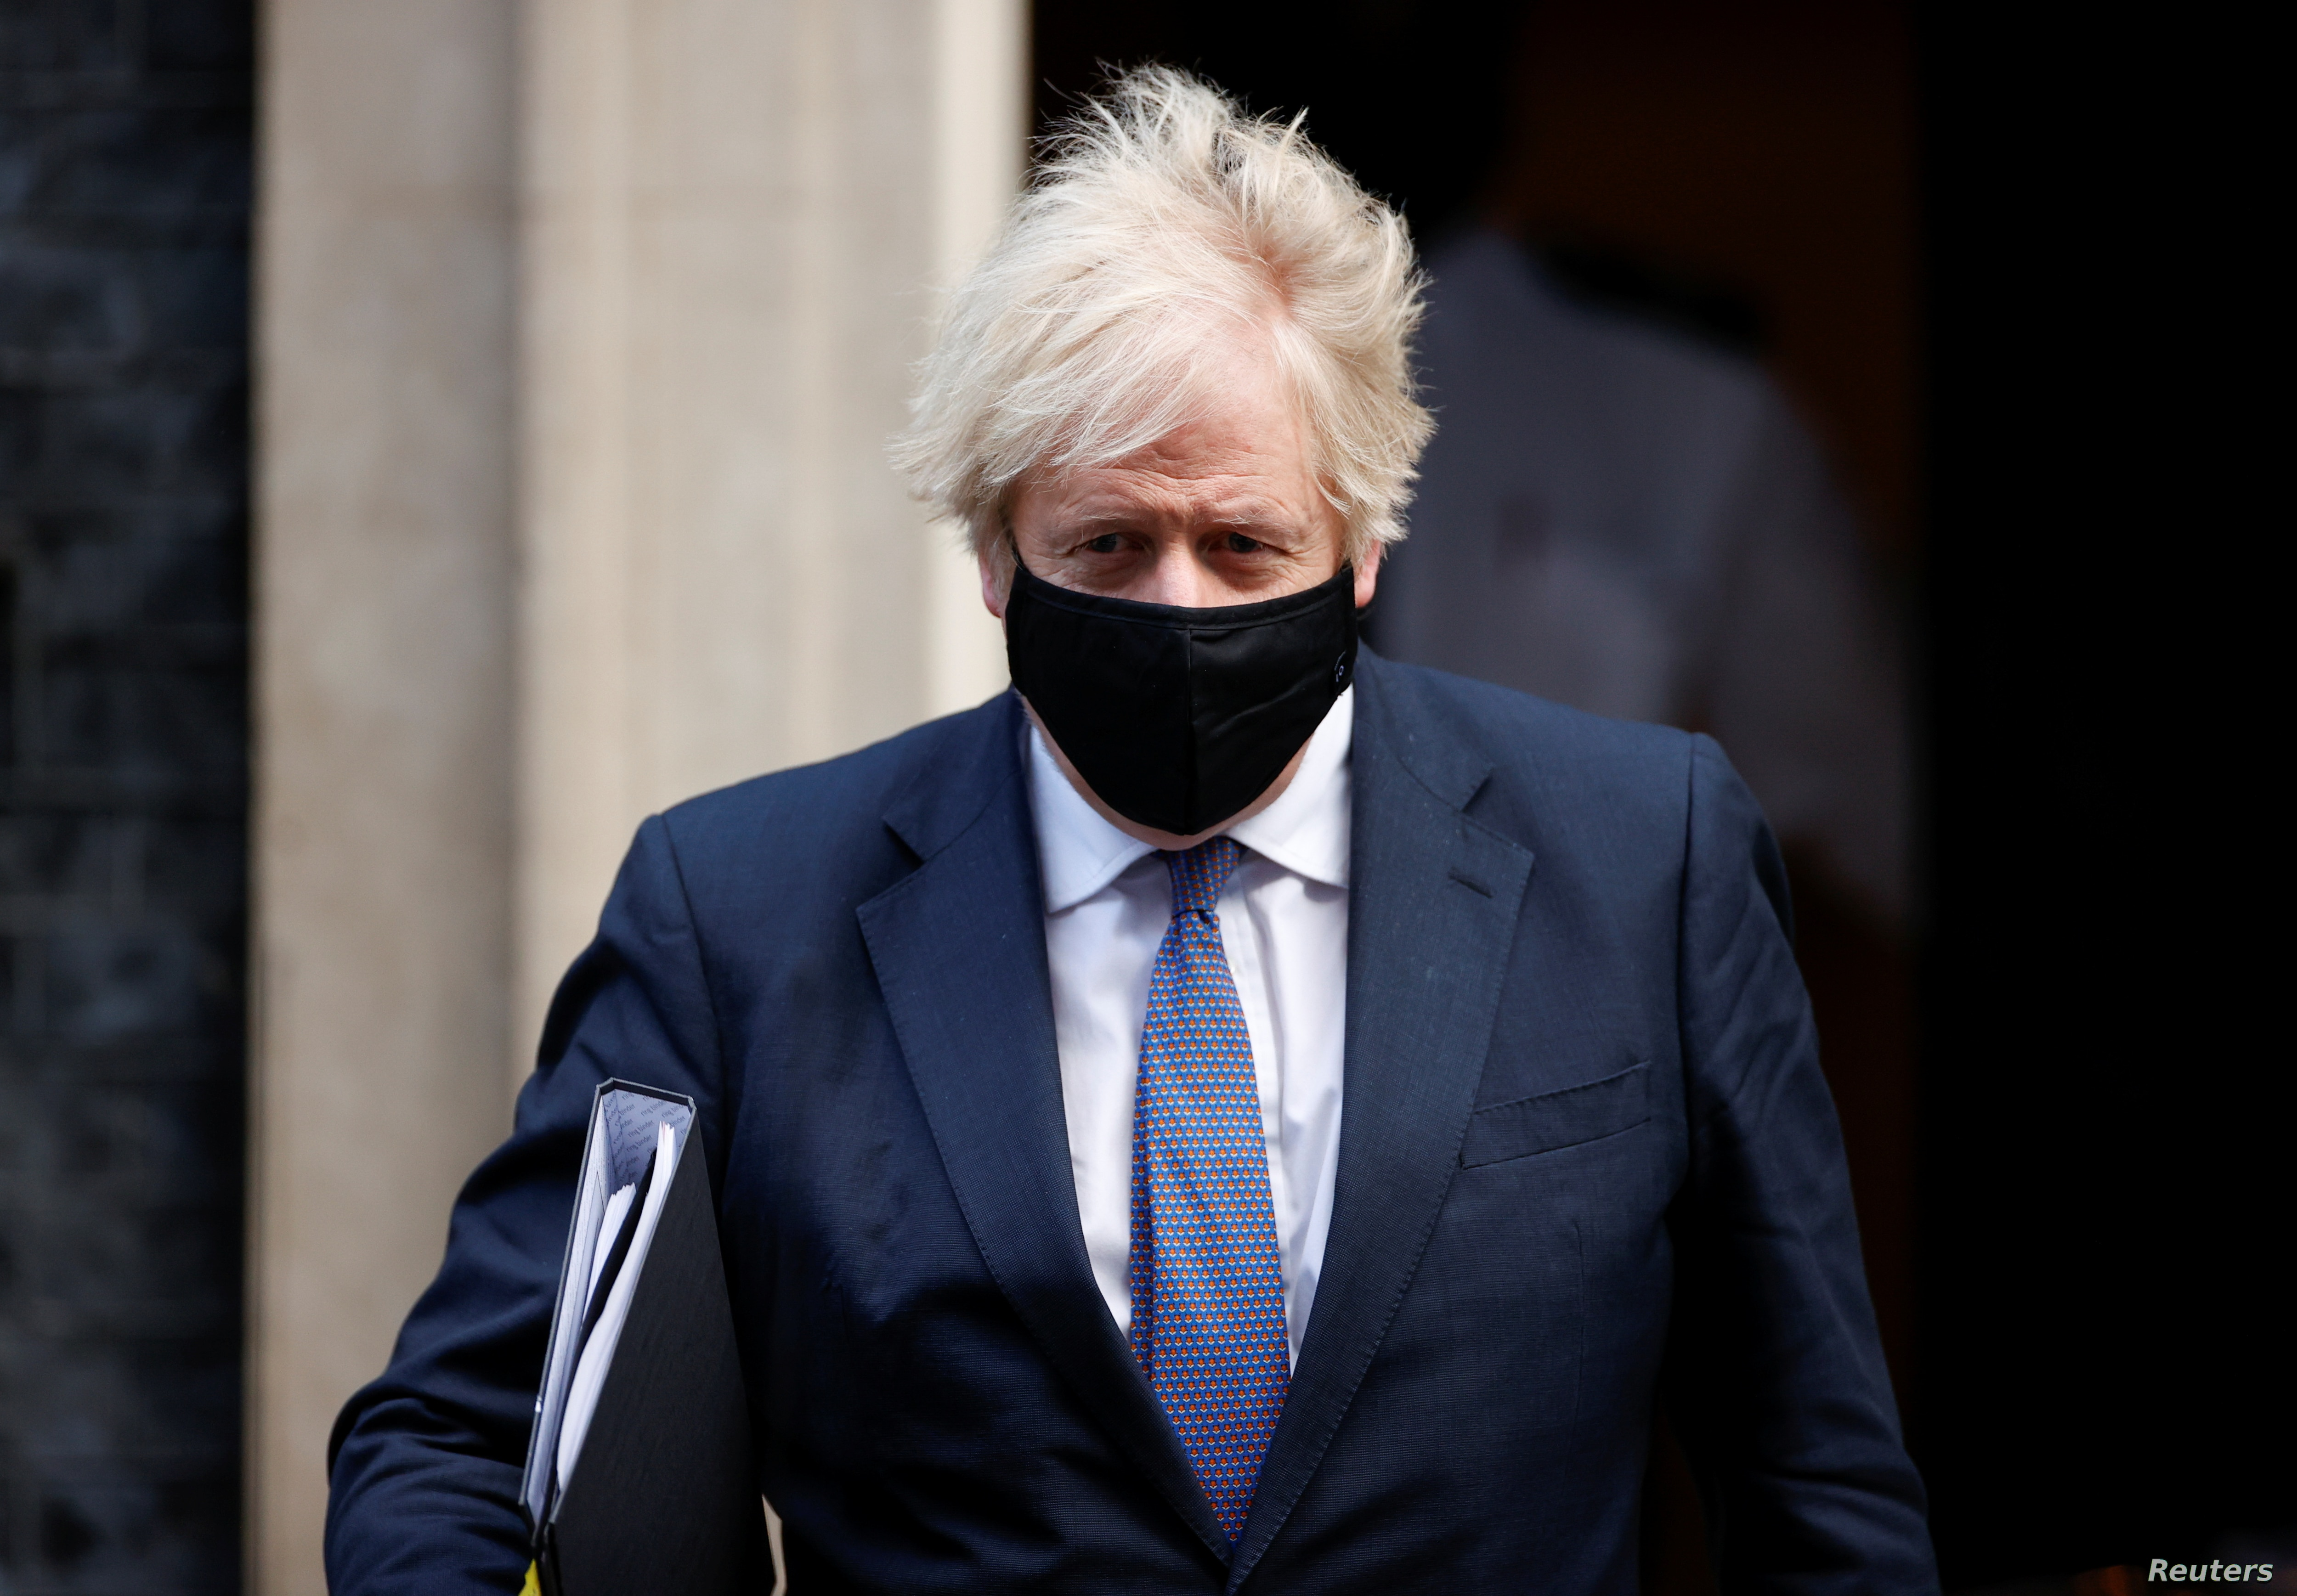 End of England's lockdown will be 'gradual unwrapping', says Boris